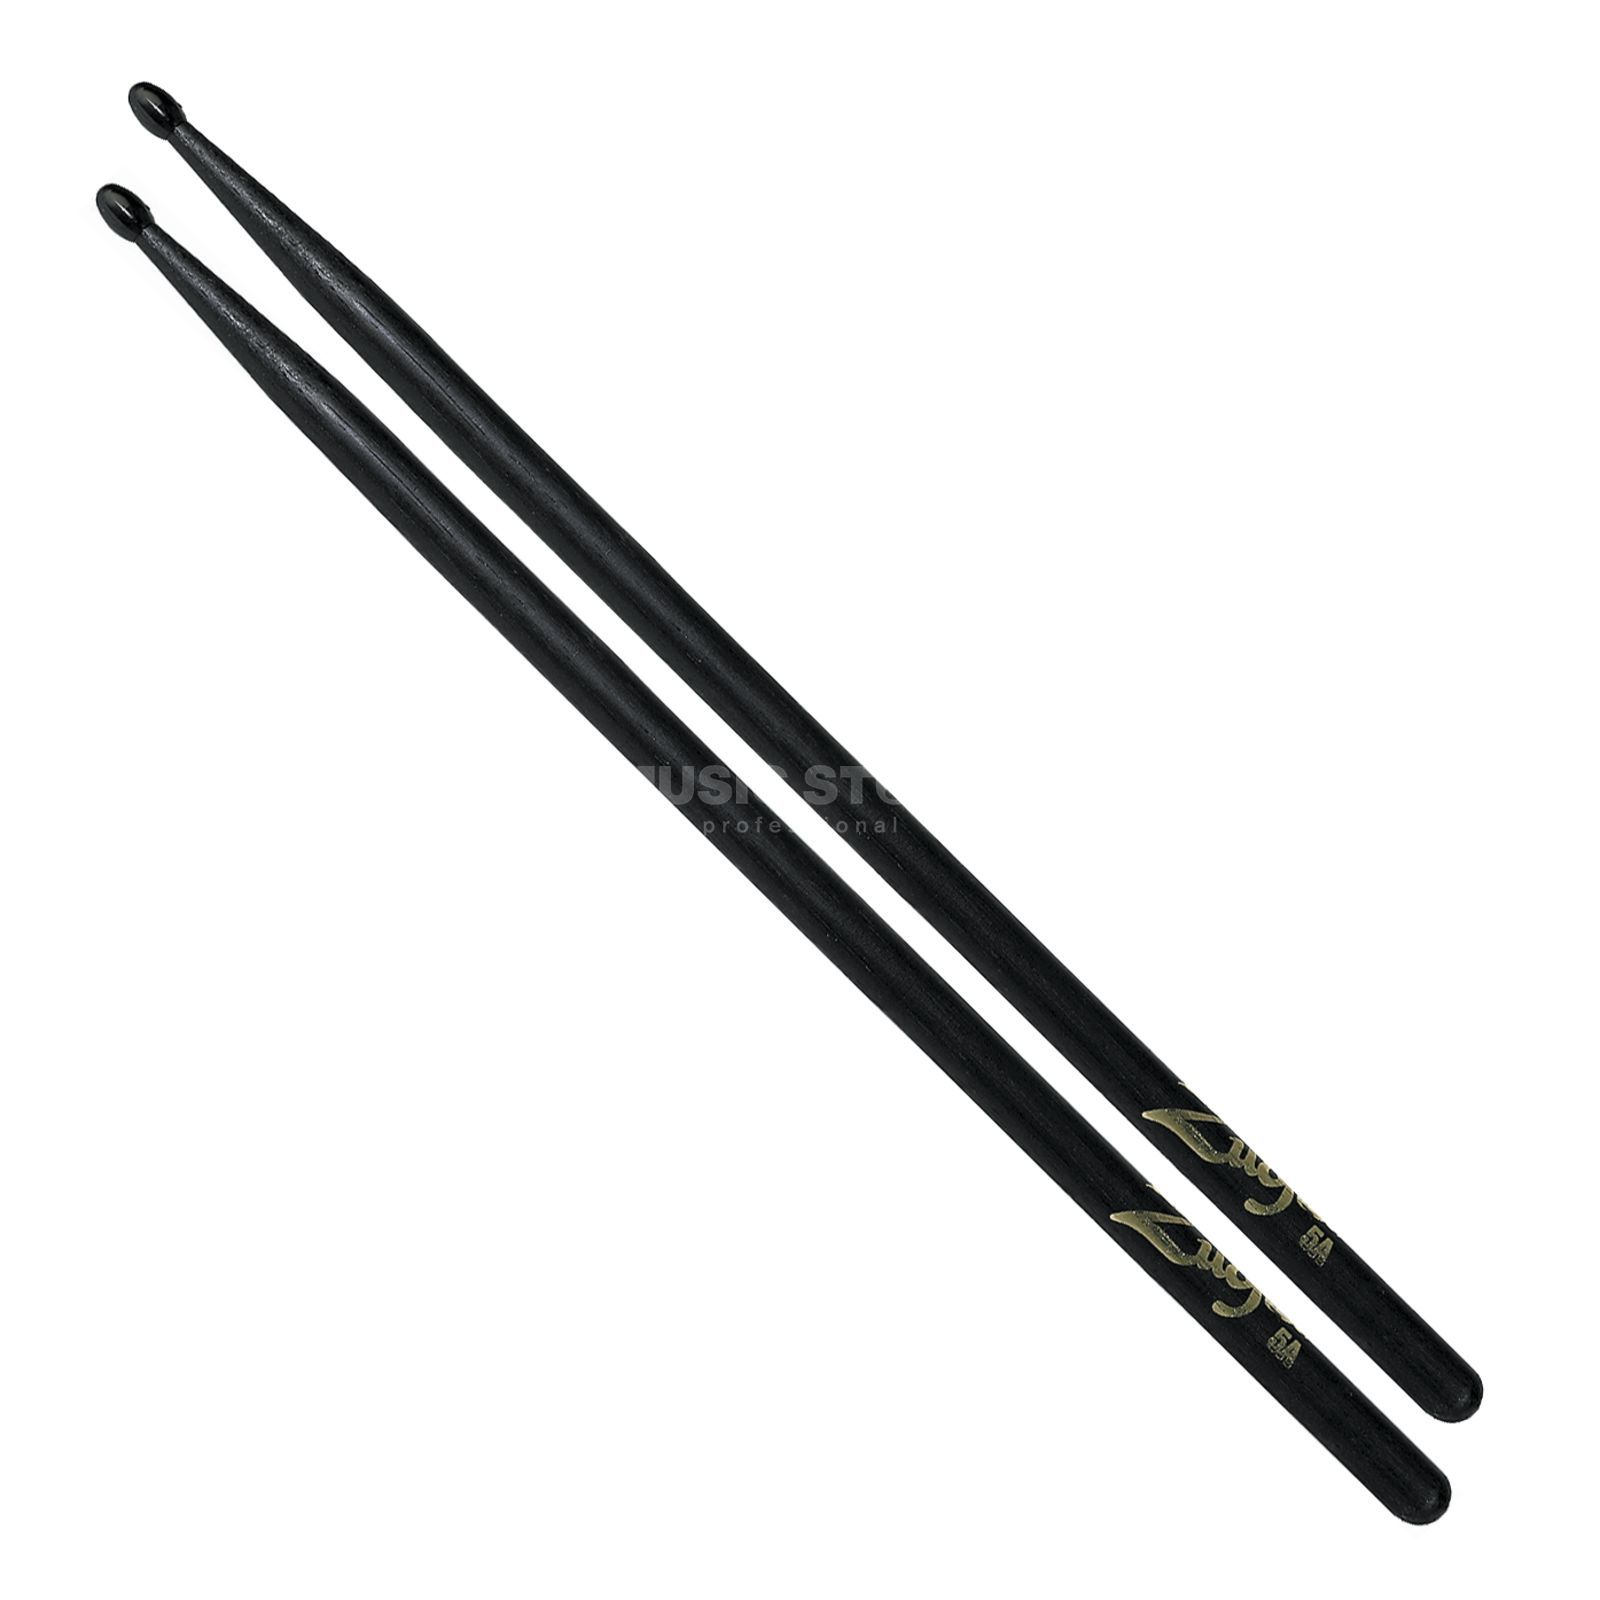 Zildjian 5AN Hickory Sticks, Black Black Finish, Nylon Tip Product Image